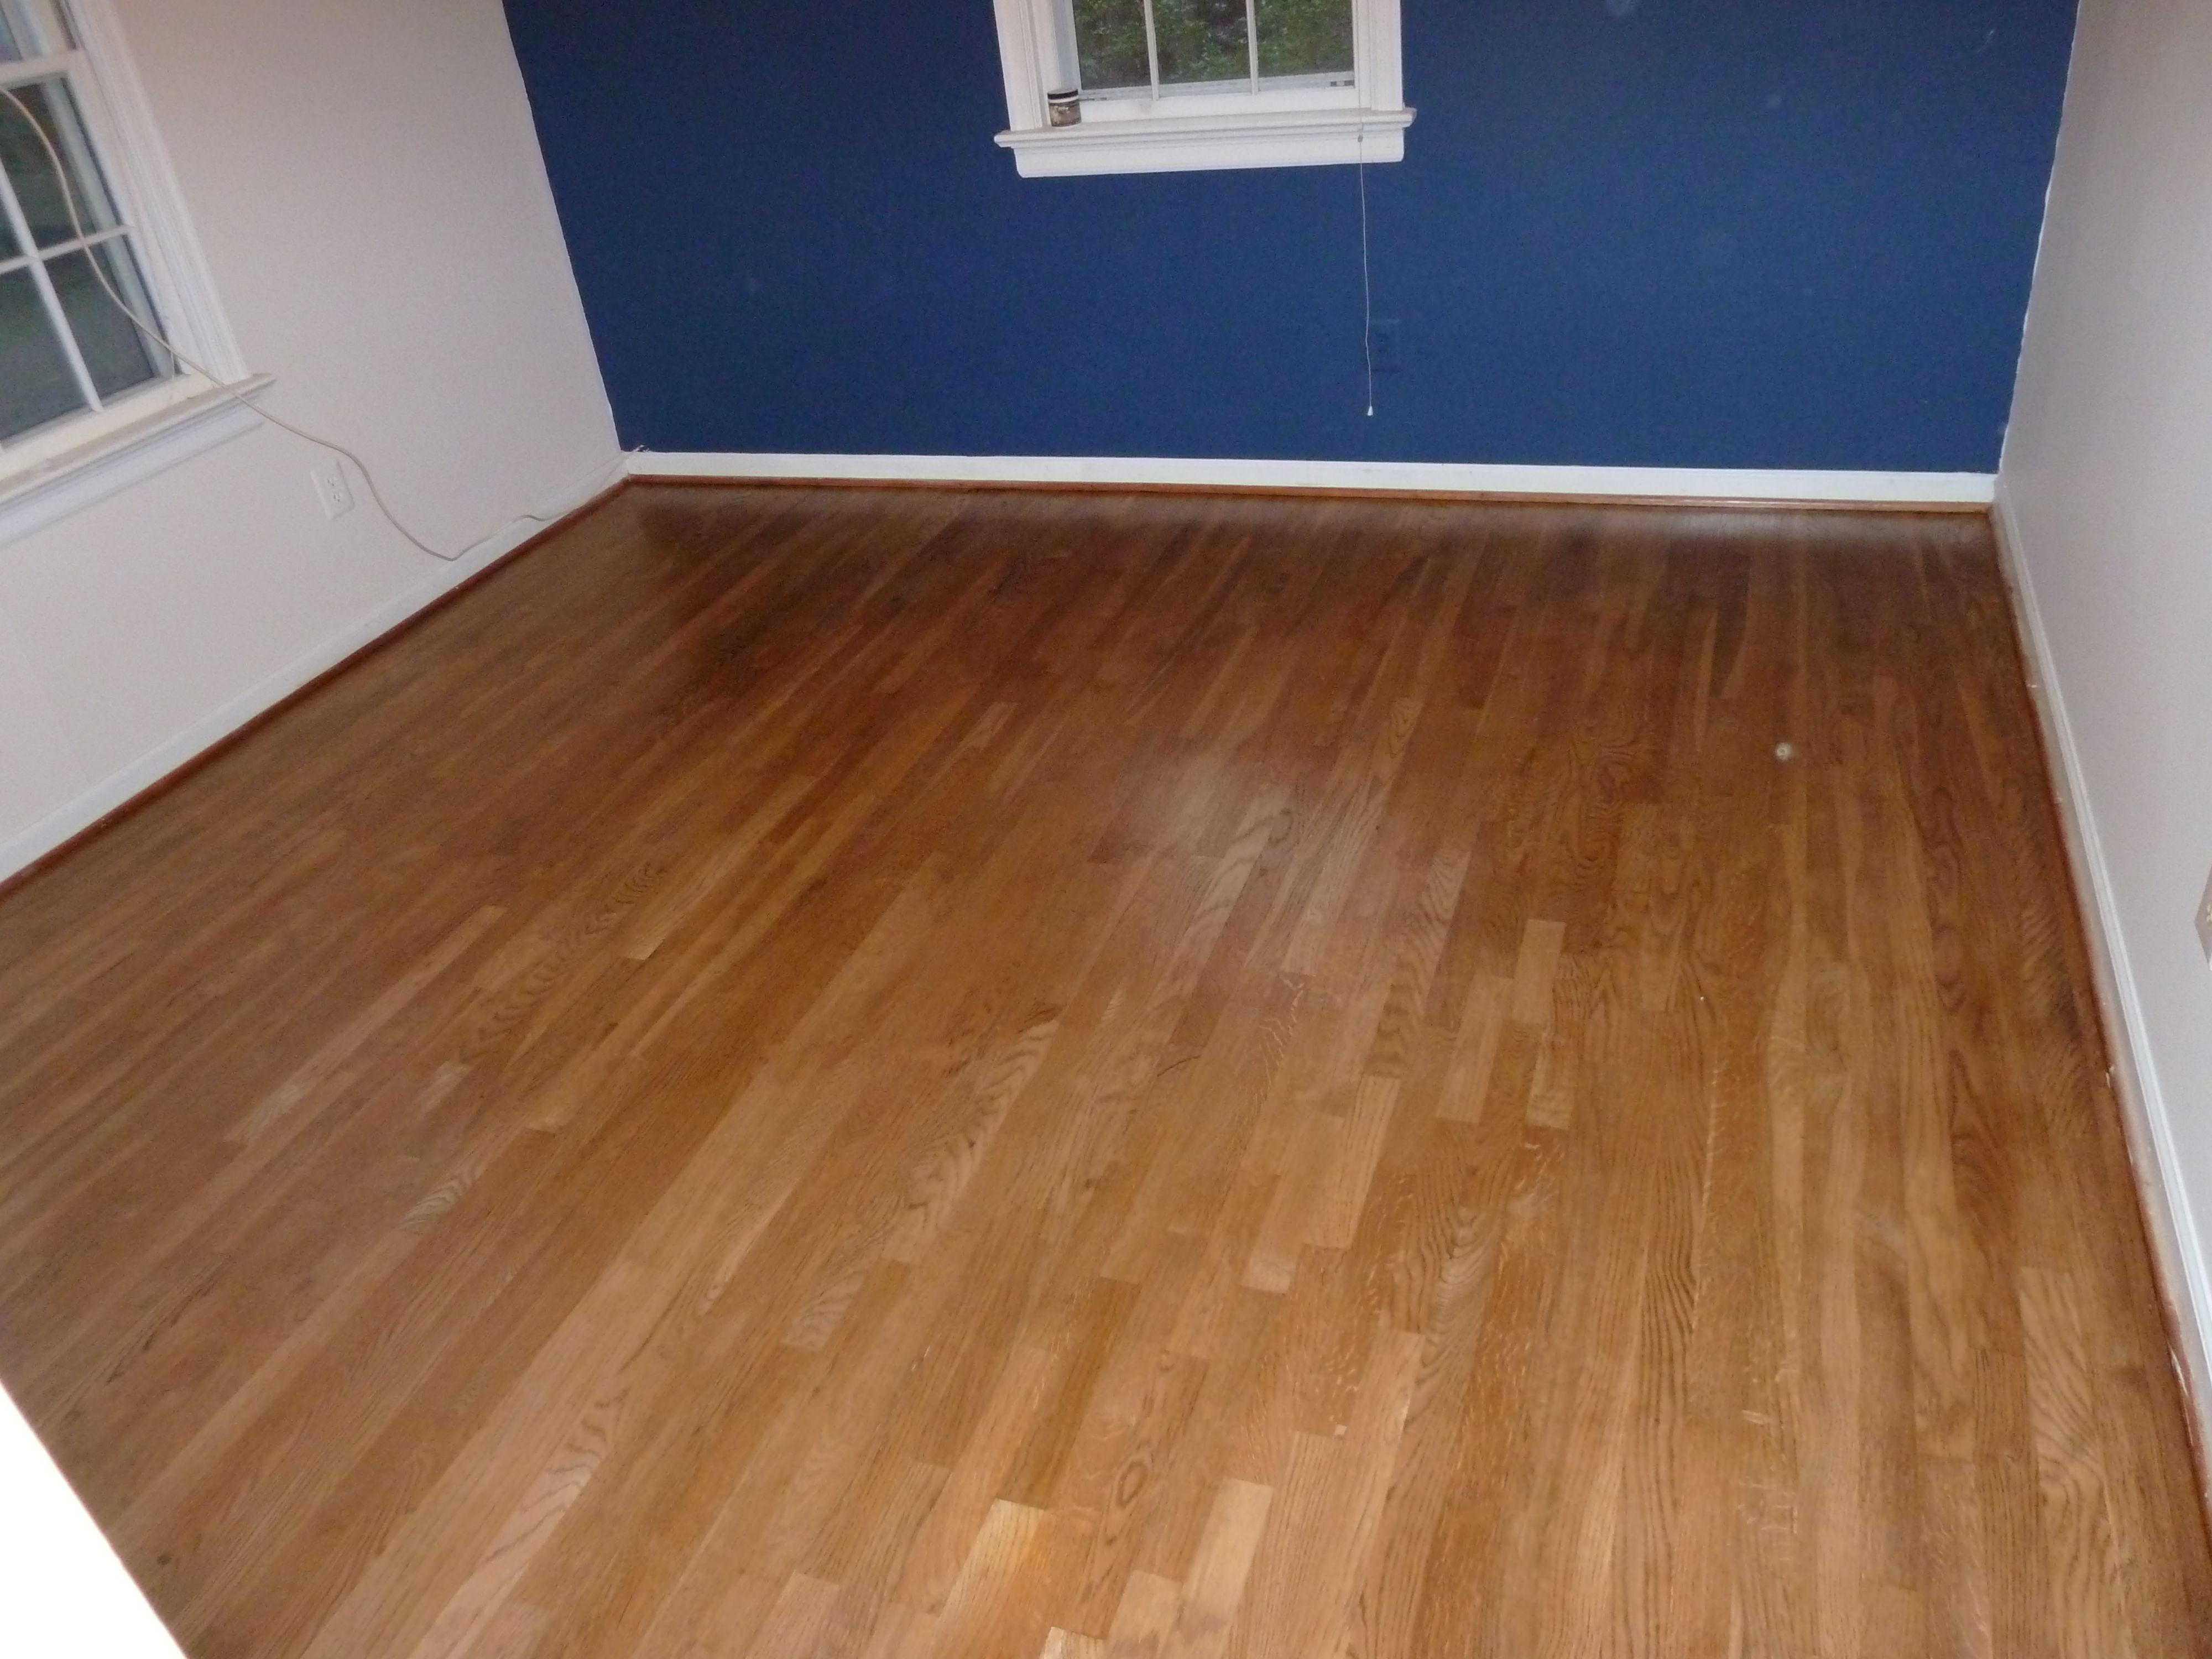 Red Oak Hardwood Floor Stained Golden Oak and coated with ...